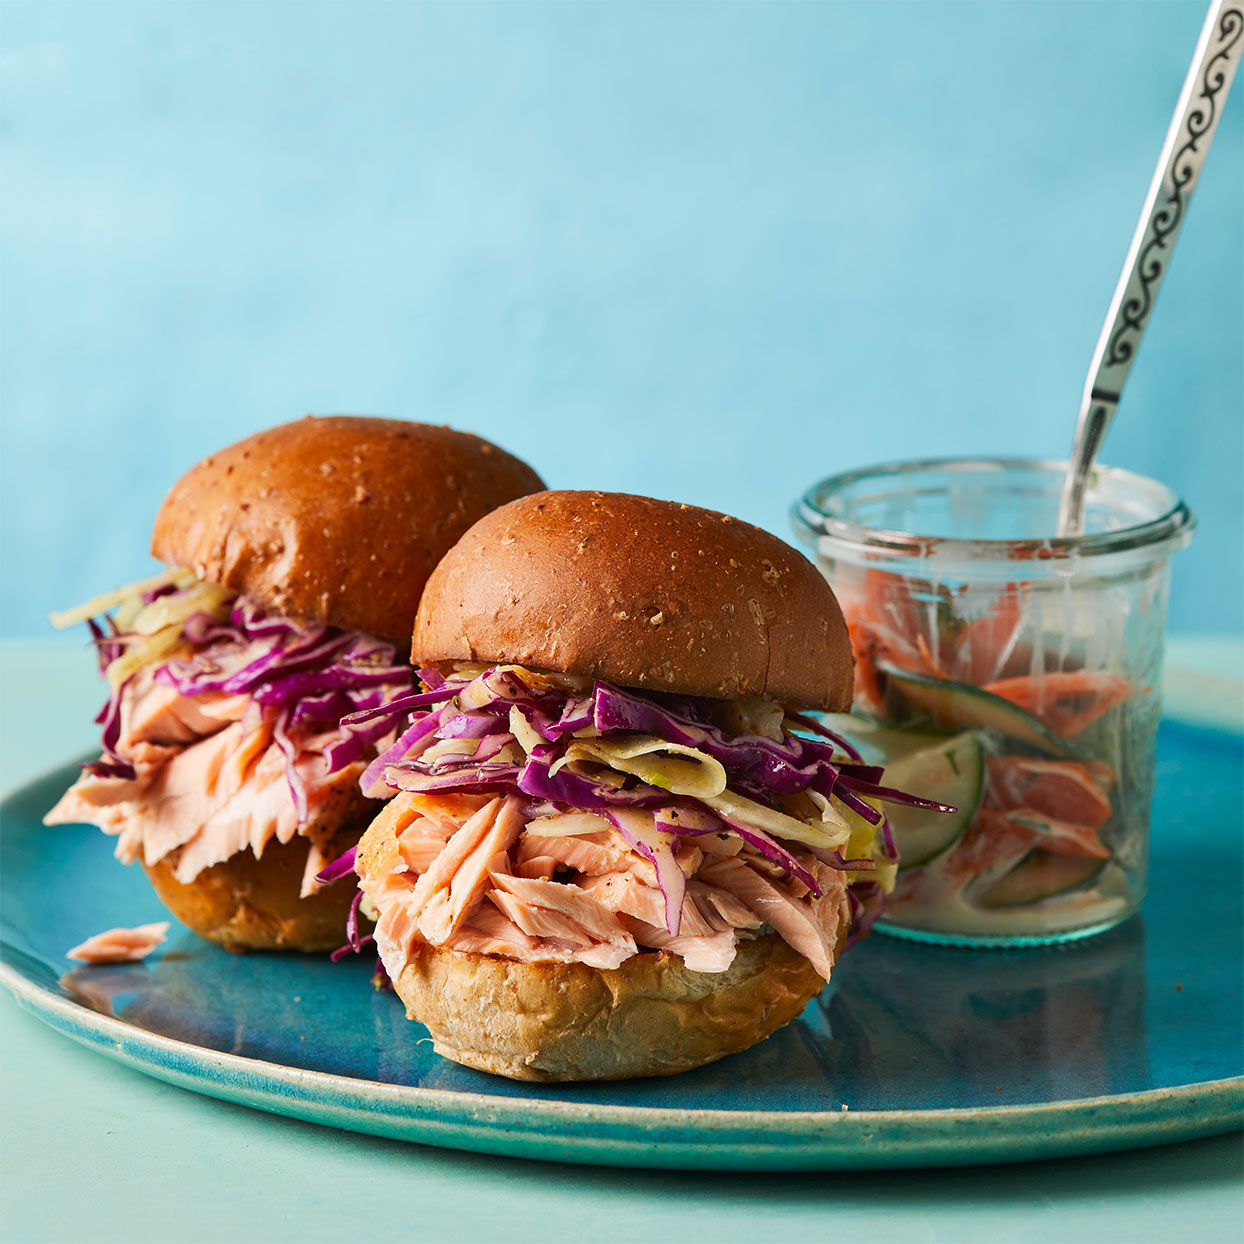 The deep purple of the cabbage slaw would be enough to liven up these salmon sliders, but we add even more color with a simple carrot and cucumber side salad. Source: Diabetic Living Magazine, Spring 2020